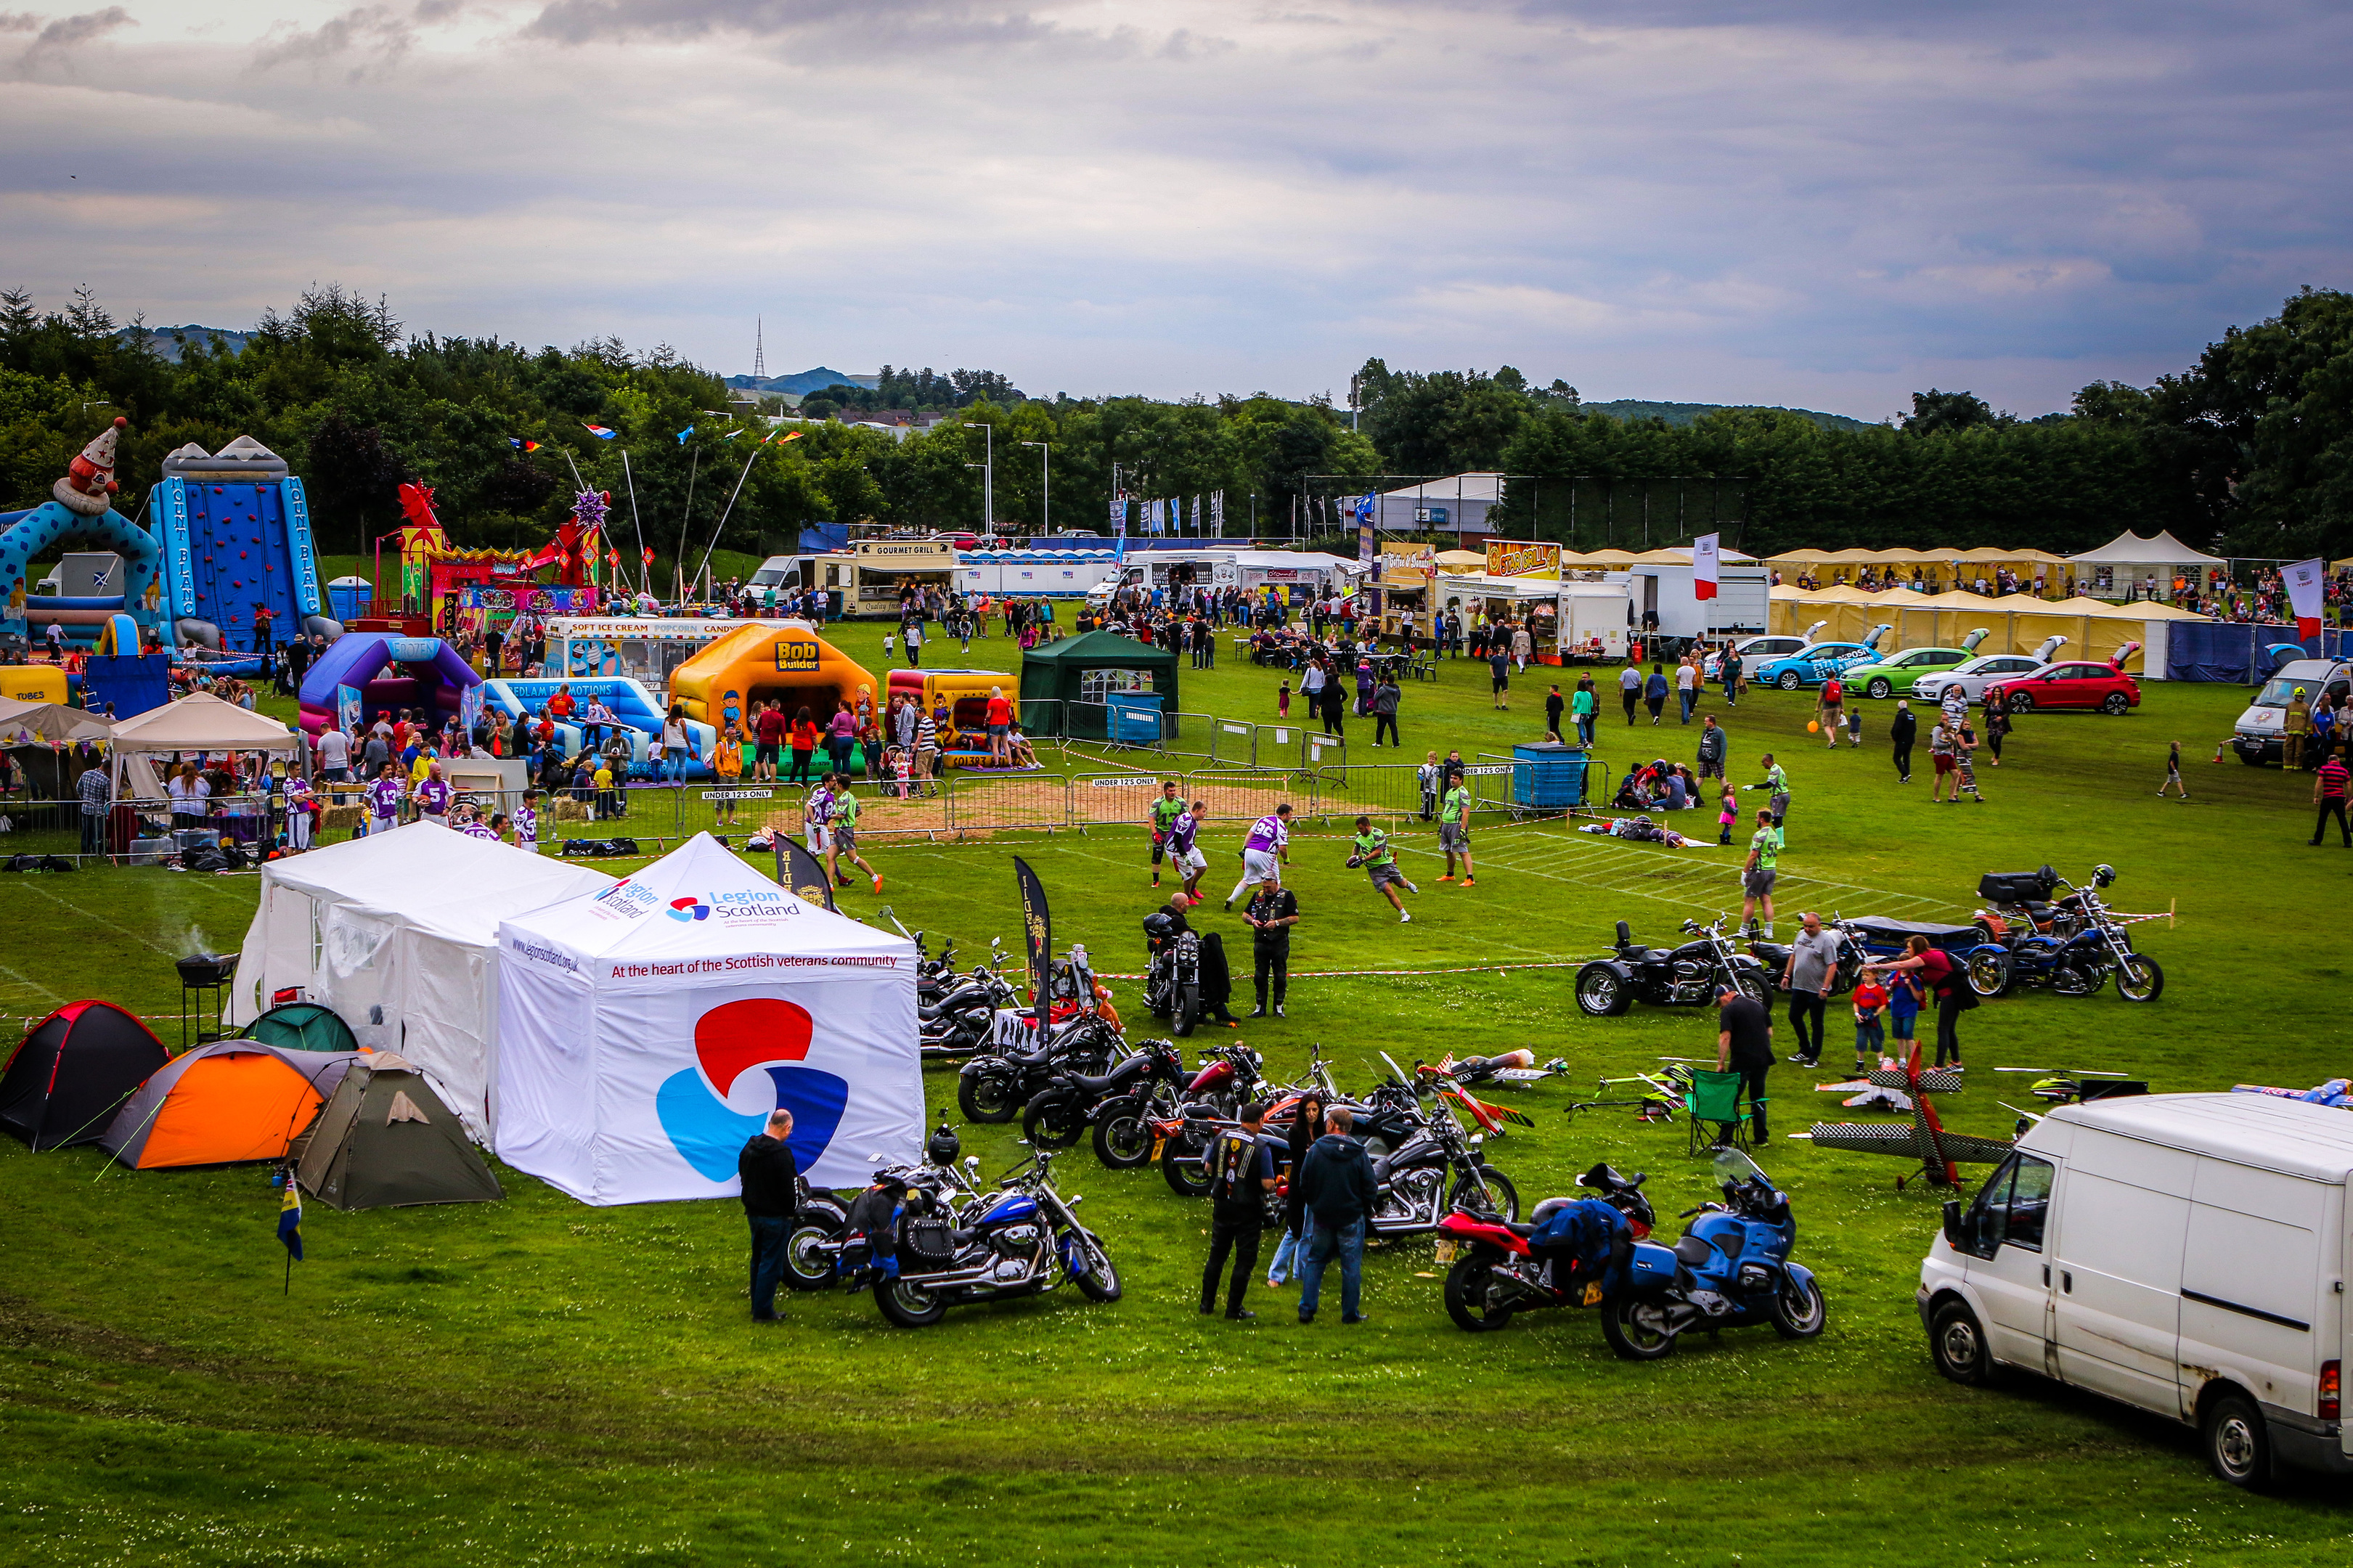 Last year's PKD Festival at Dalgety Bay. The festival is on the move this year.